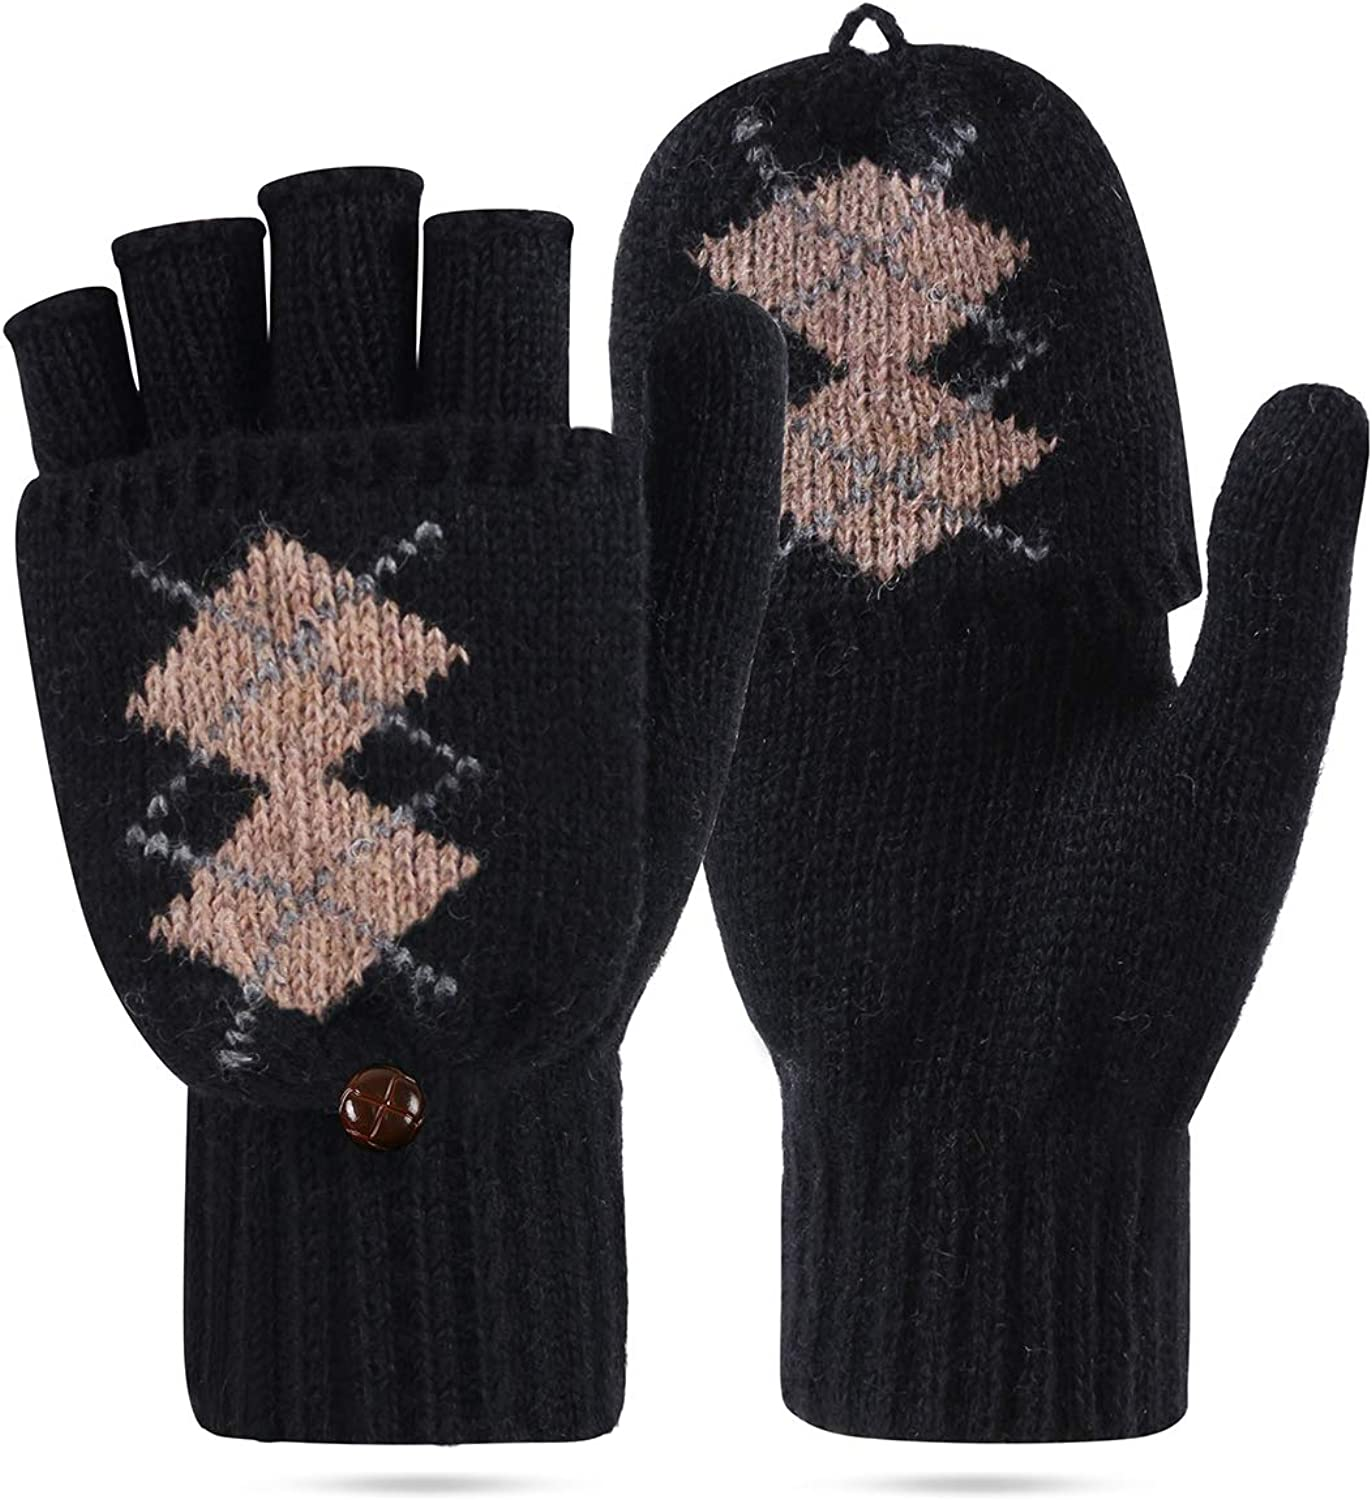 Women's Winter Gloves Warm...